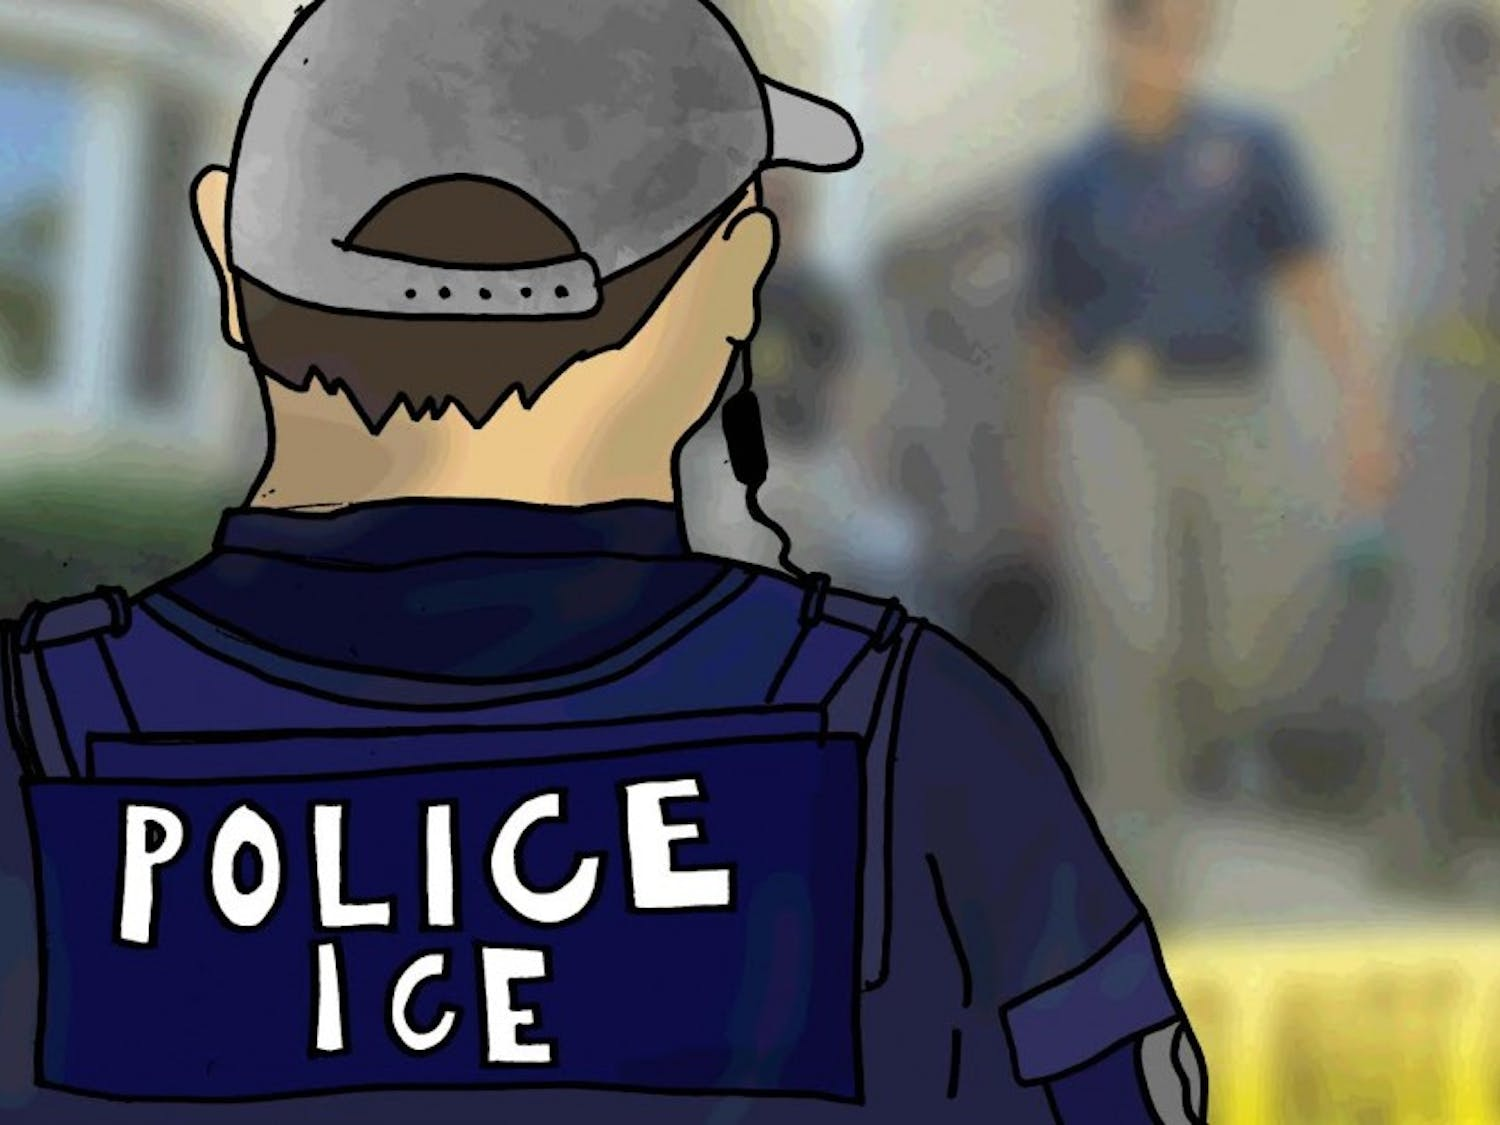 U.S. Representative Mark Pocan met with ICE officials yesterday for information about the weekend's raids, but he said he left with few answers.